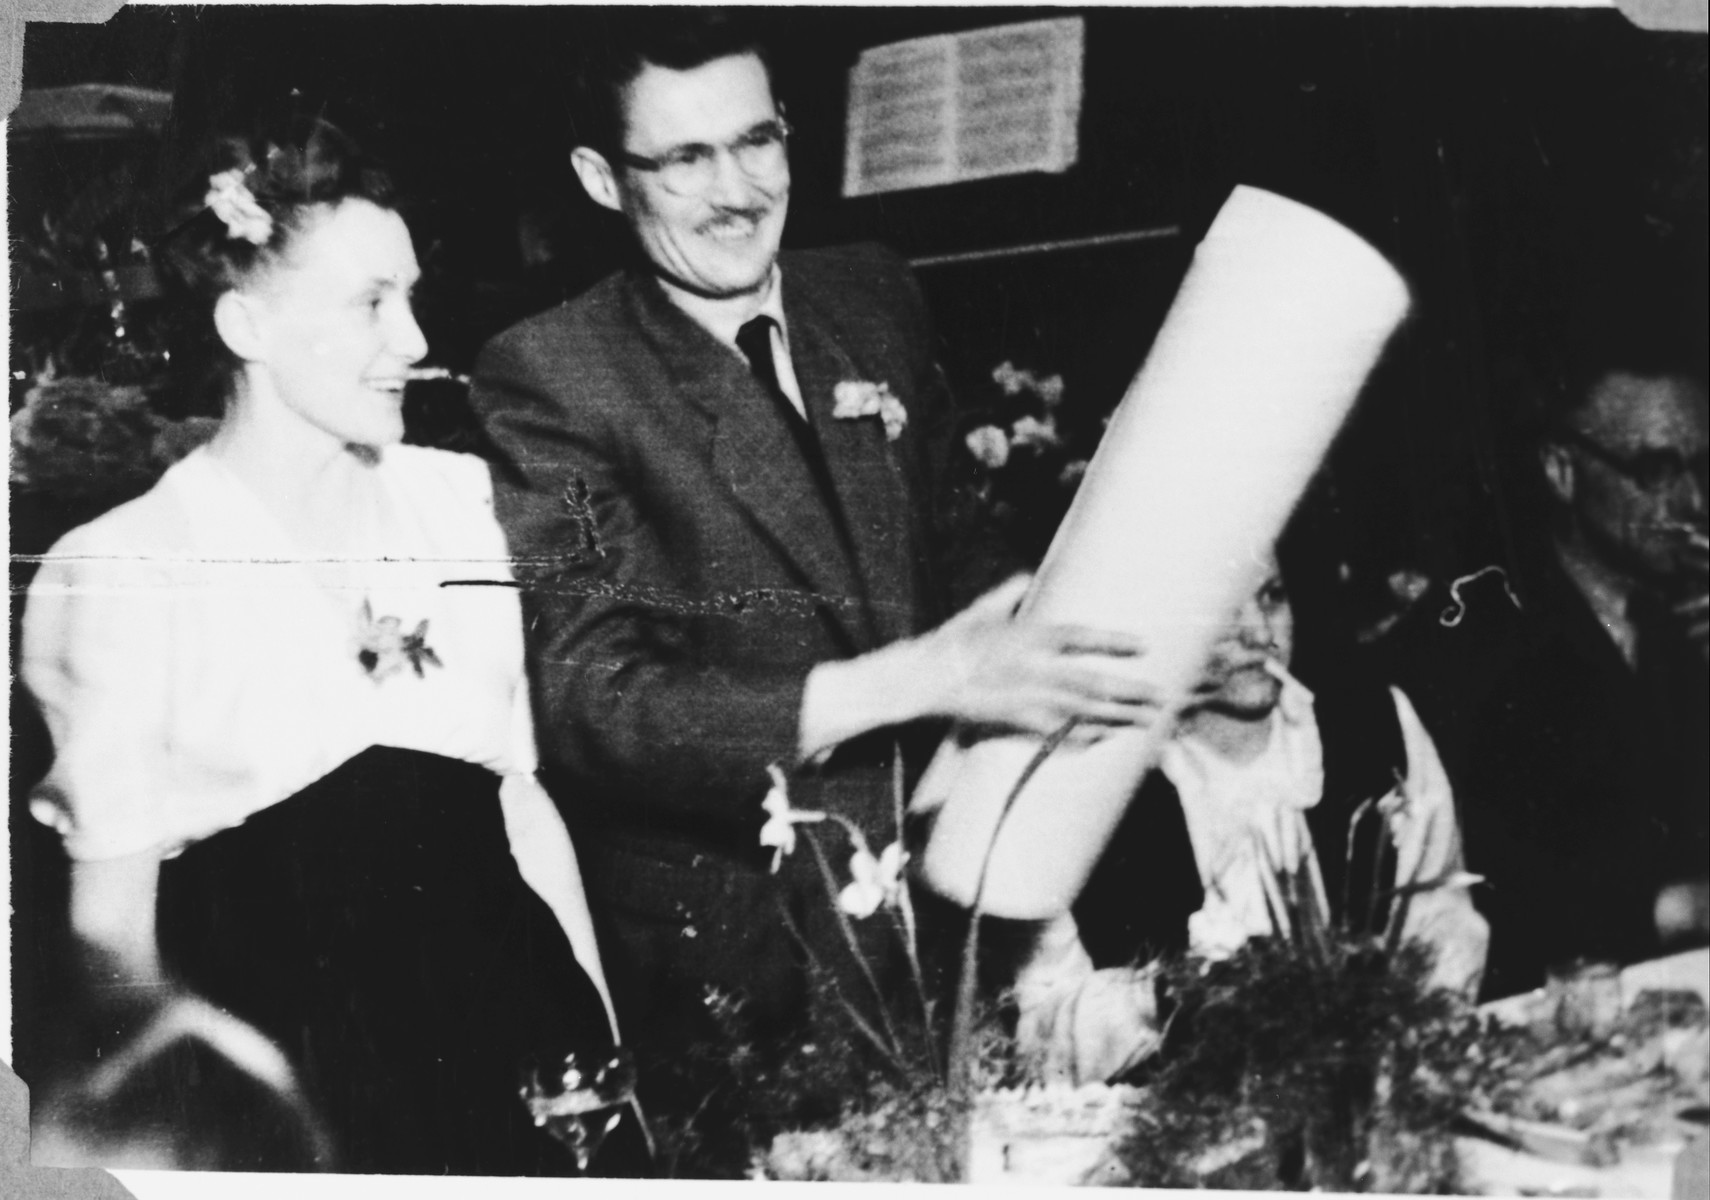 Relief workers, Marion and Tony Pritchard, celebrate their wedding in the Windsheim displaced persons' camp.